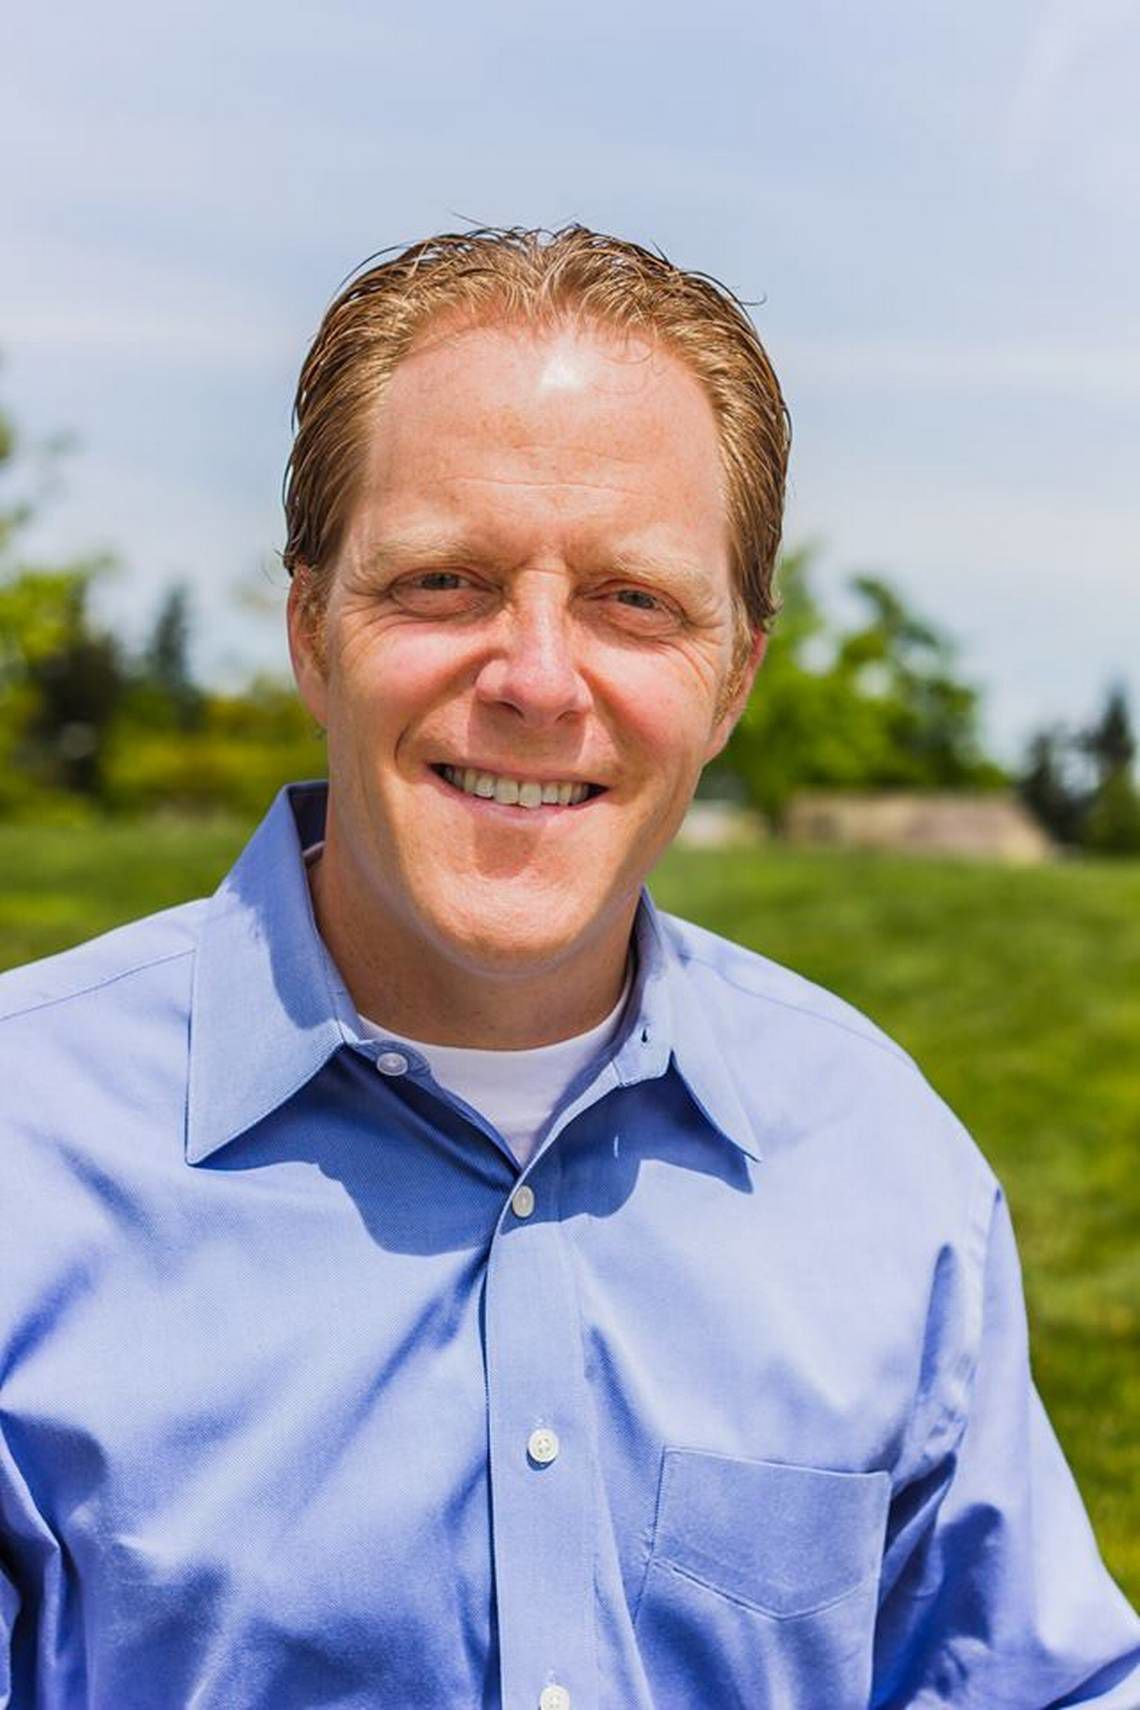 4th District congressional candidate pulls down ad after being accused of sexism